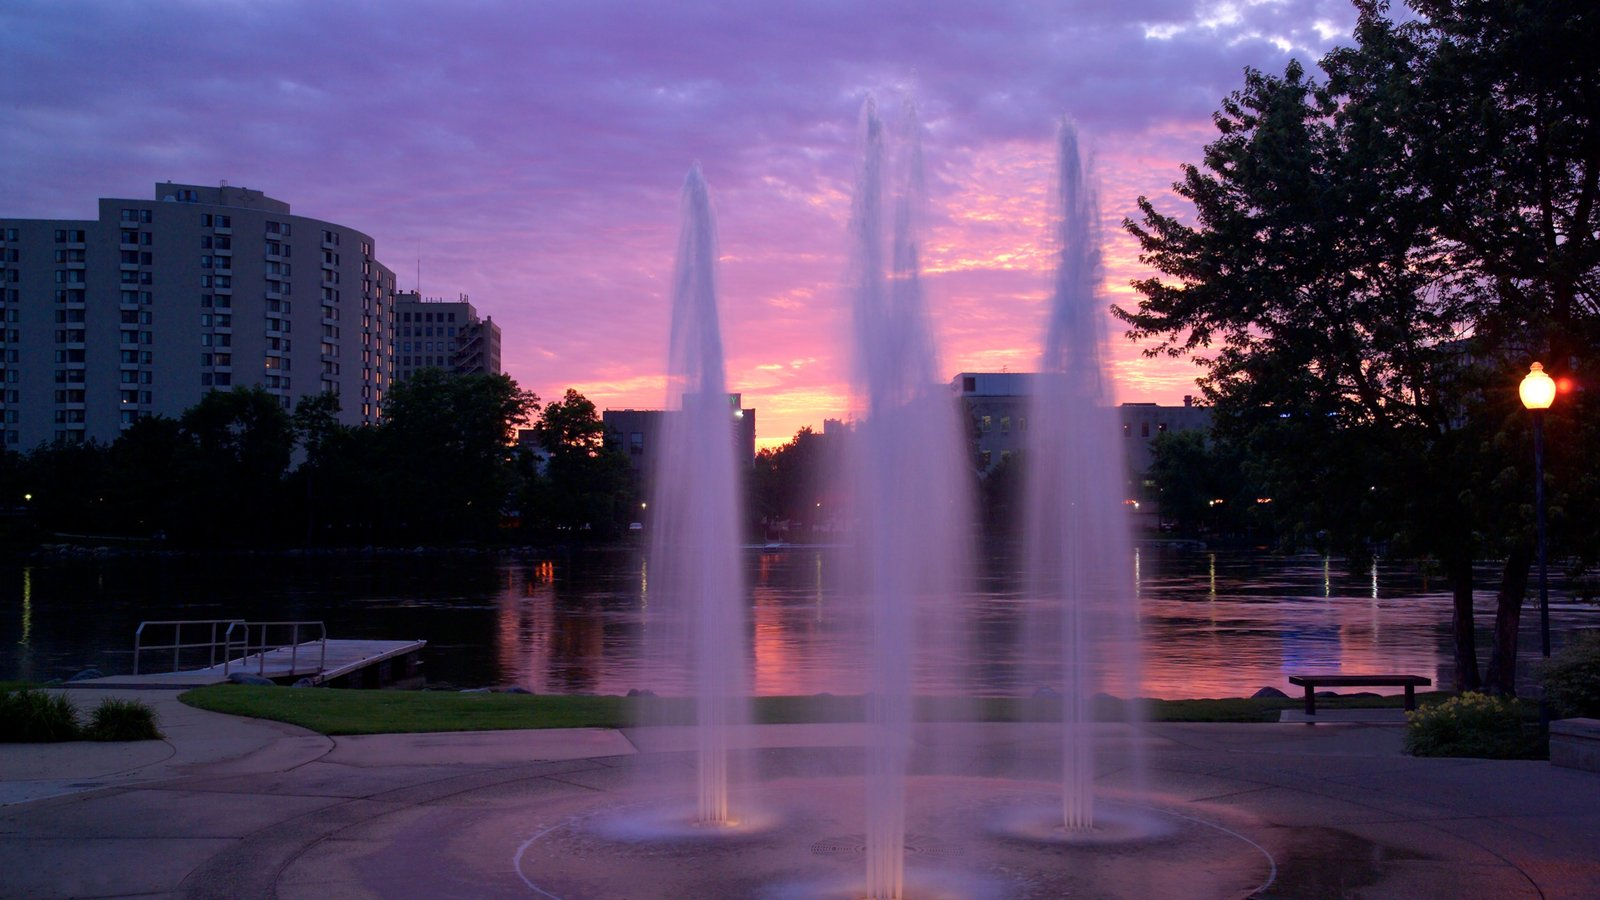 Rockford showing a fountain and a sunset